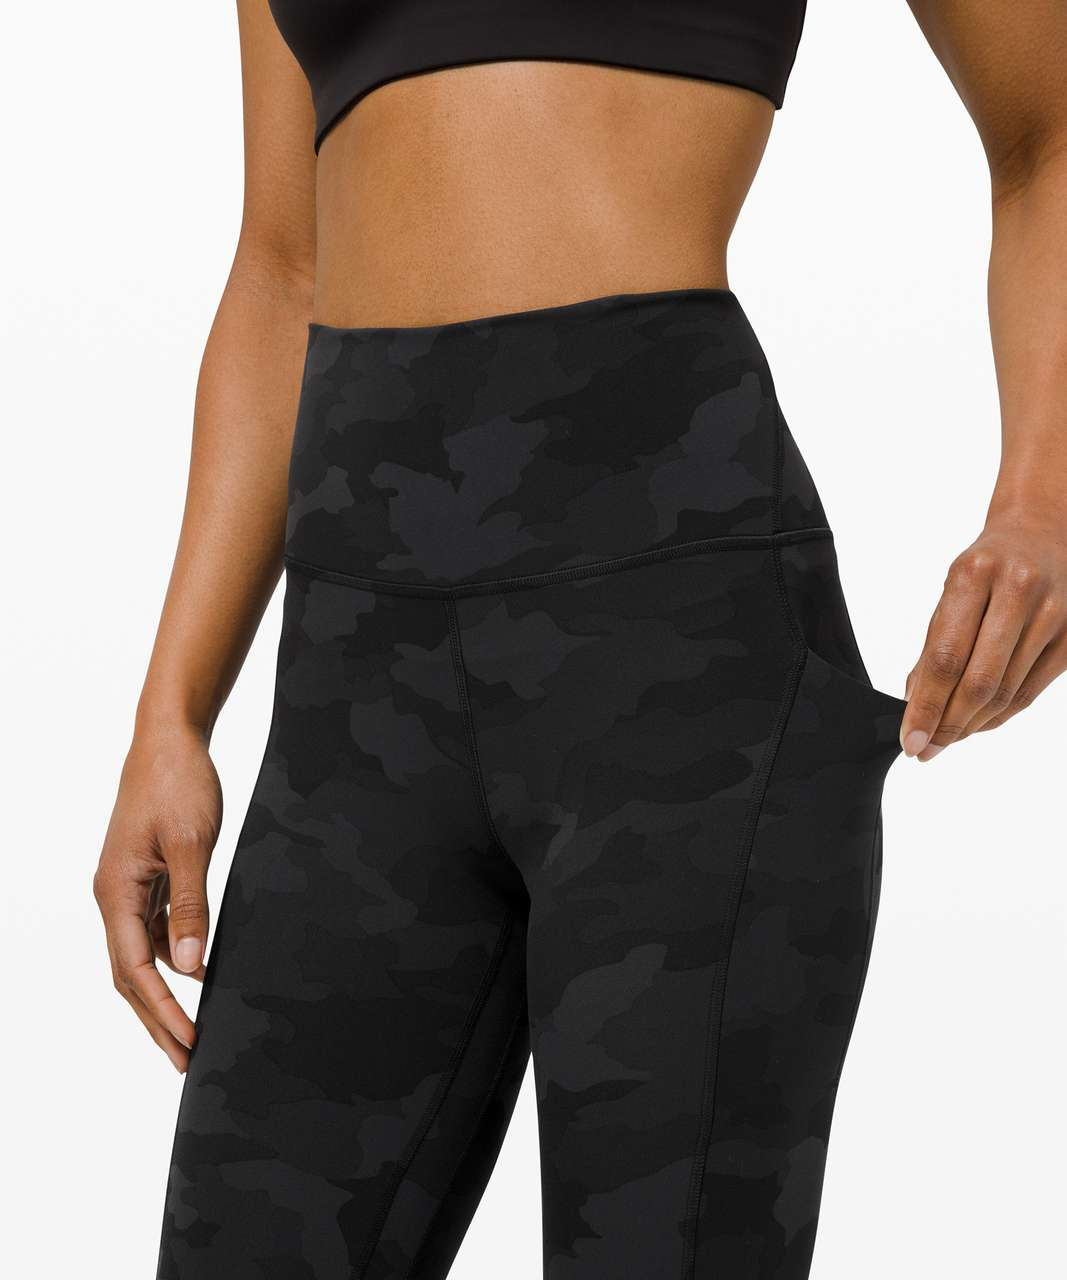 "Lululemon Align High Rise Crop with Pockets 23"" - Heritage 365 Camo Deep Coal Multi"